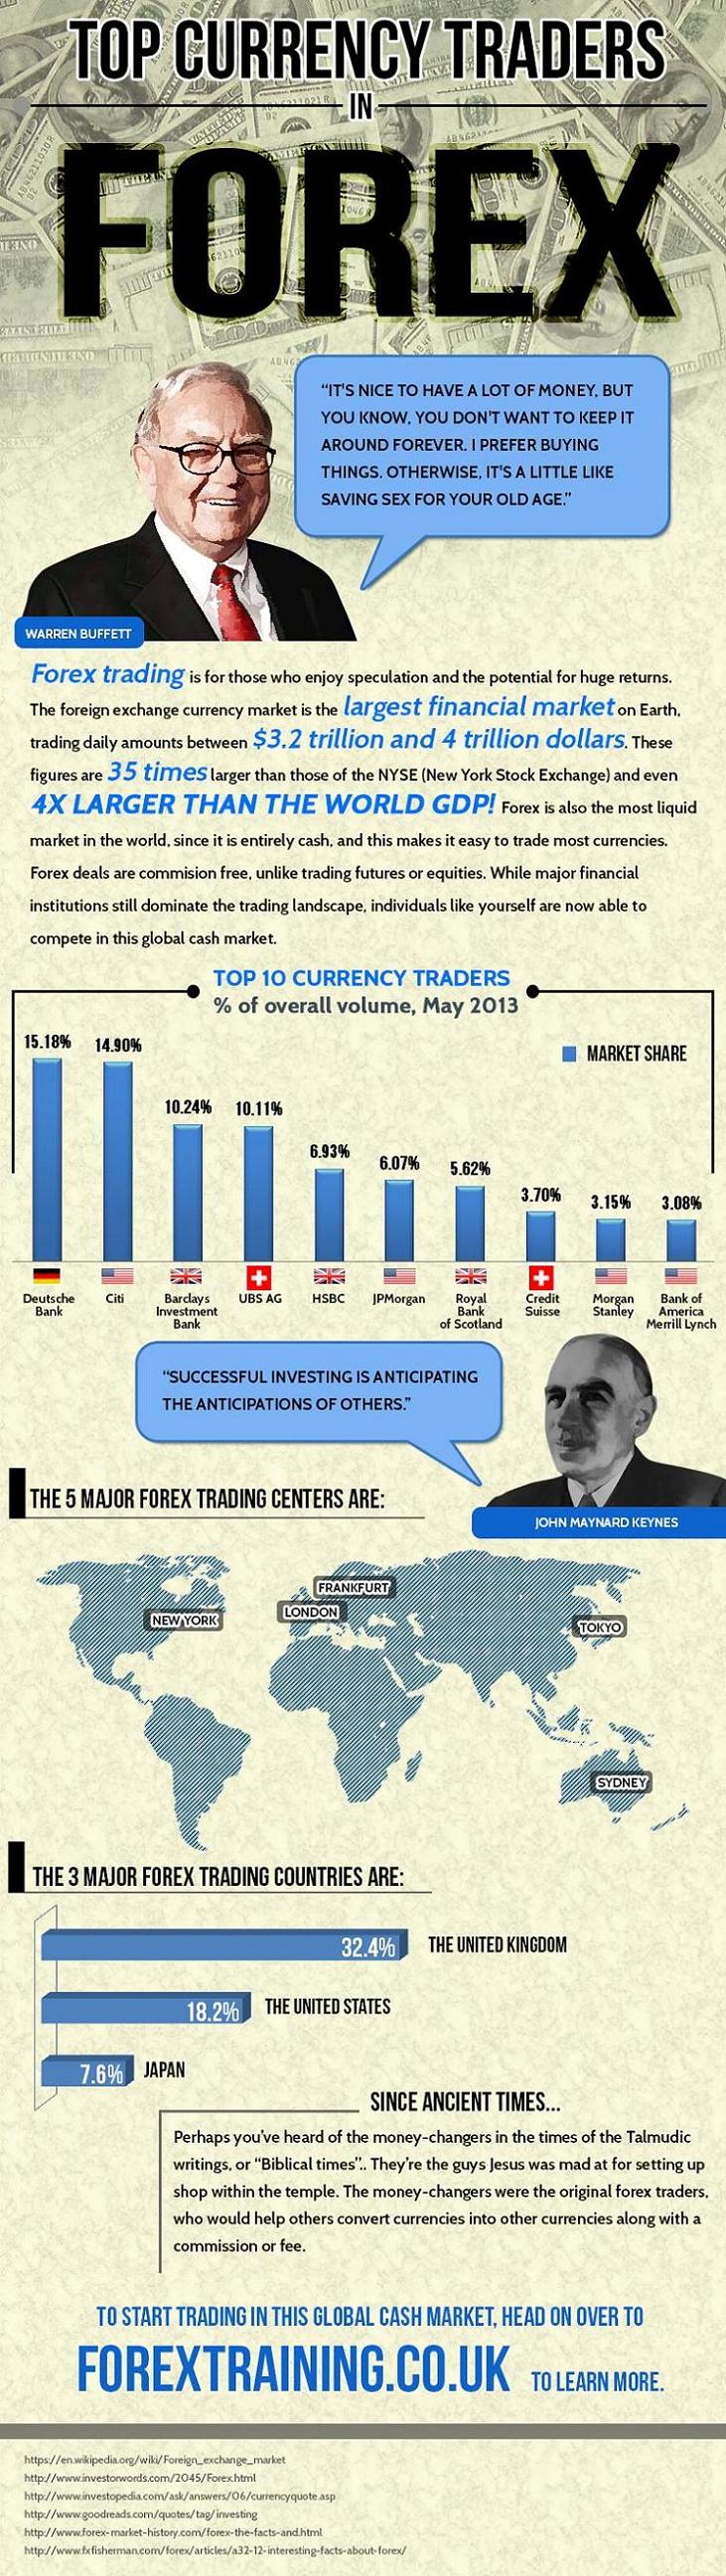 Currency traders